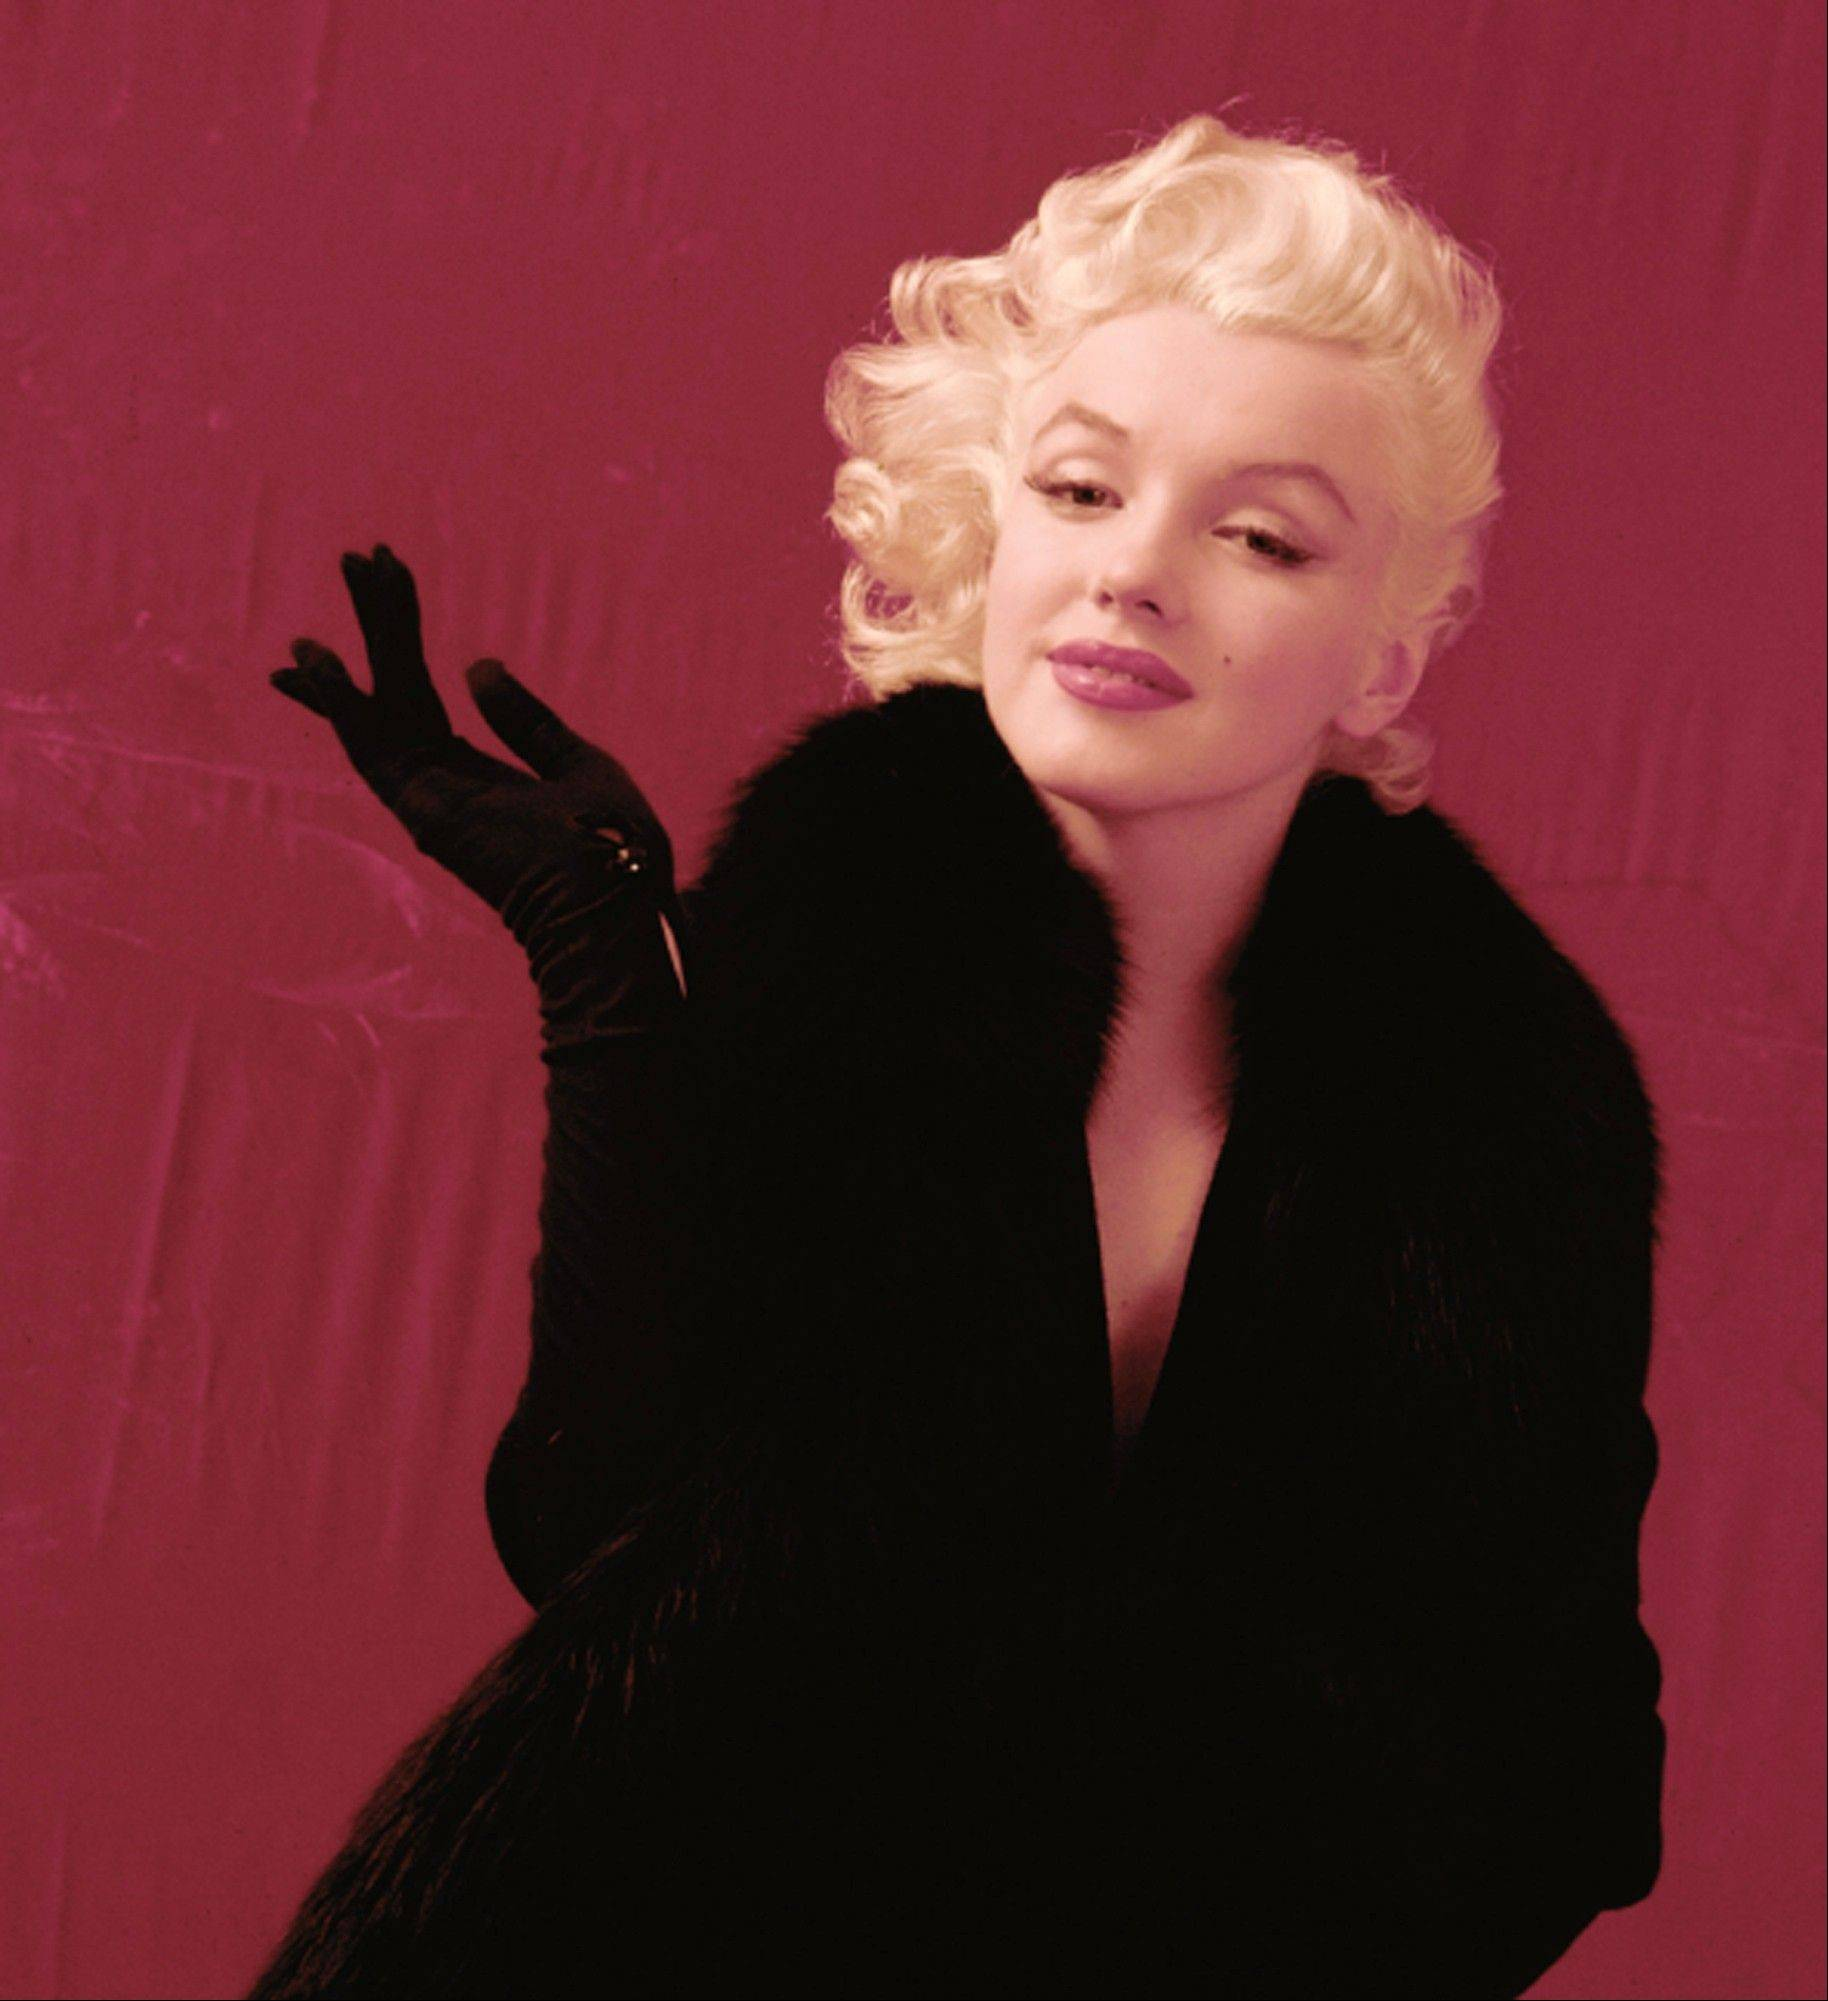 Now 3,700 never-before-published negatives and transparencies that celebrity photographer Milton H. Greene shot of Marilyn Monroe in the 1950s are going on the auction block.